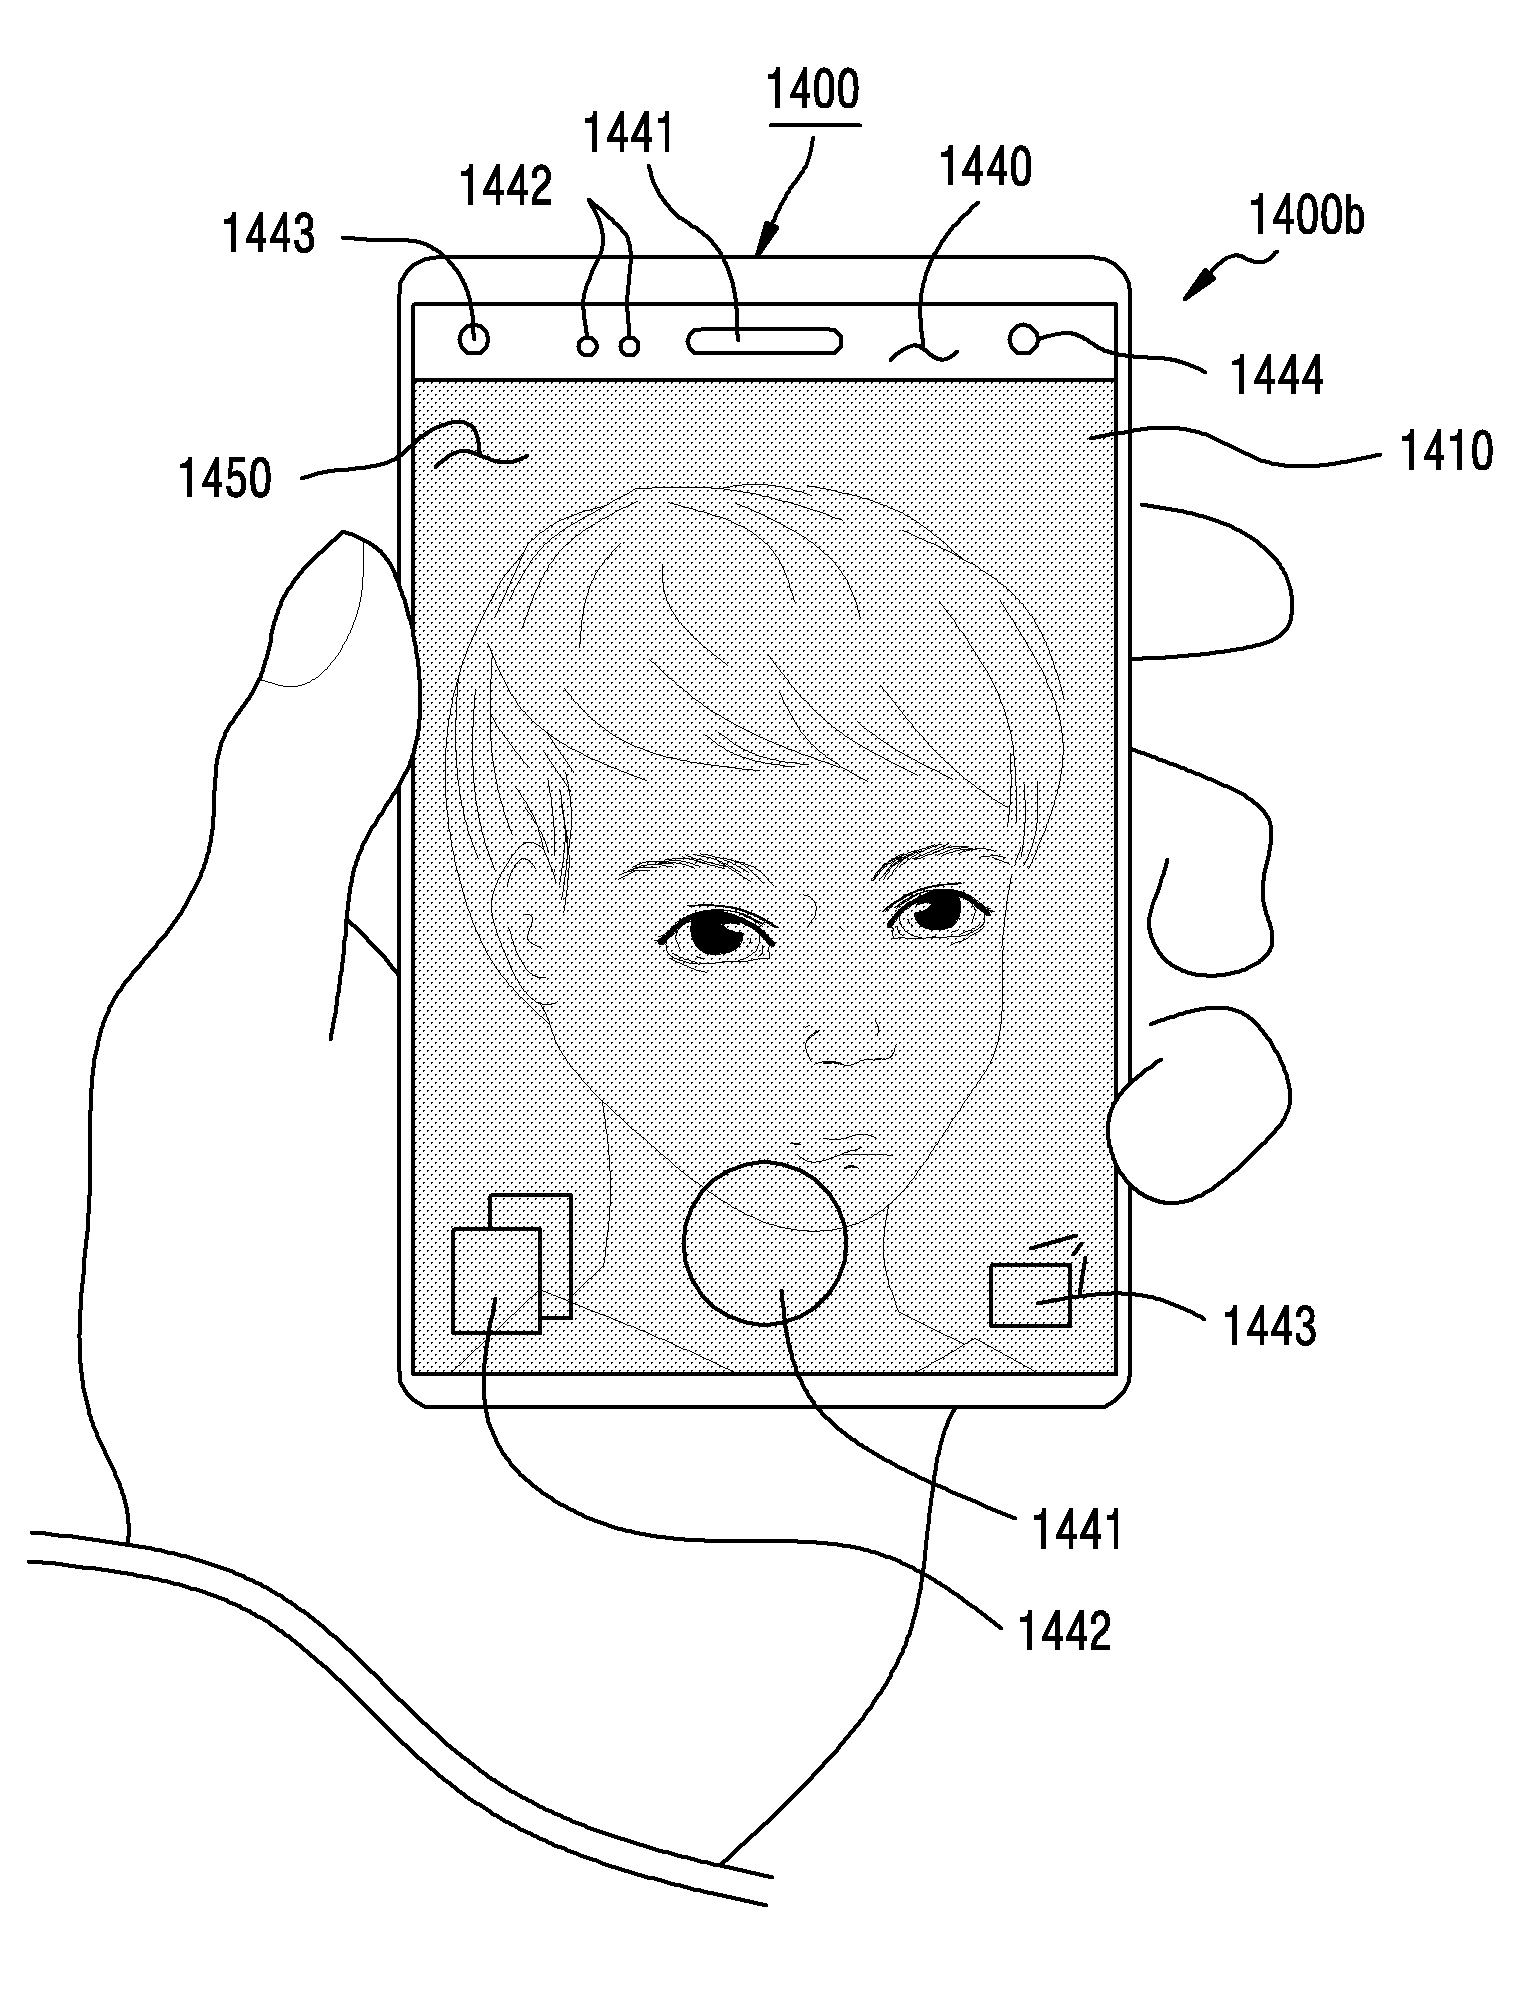 Samsung patent device unveils the sliding display screen- video call enable